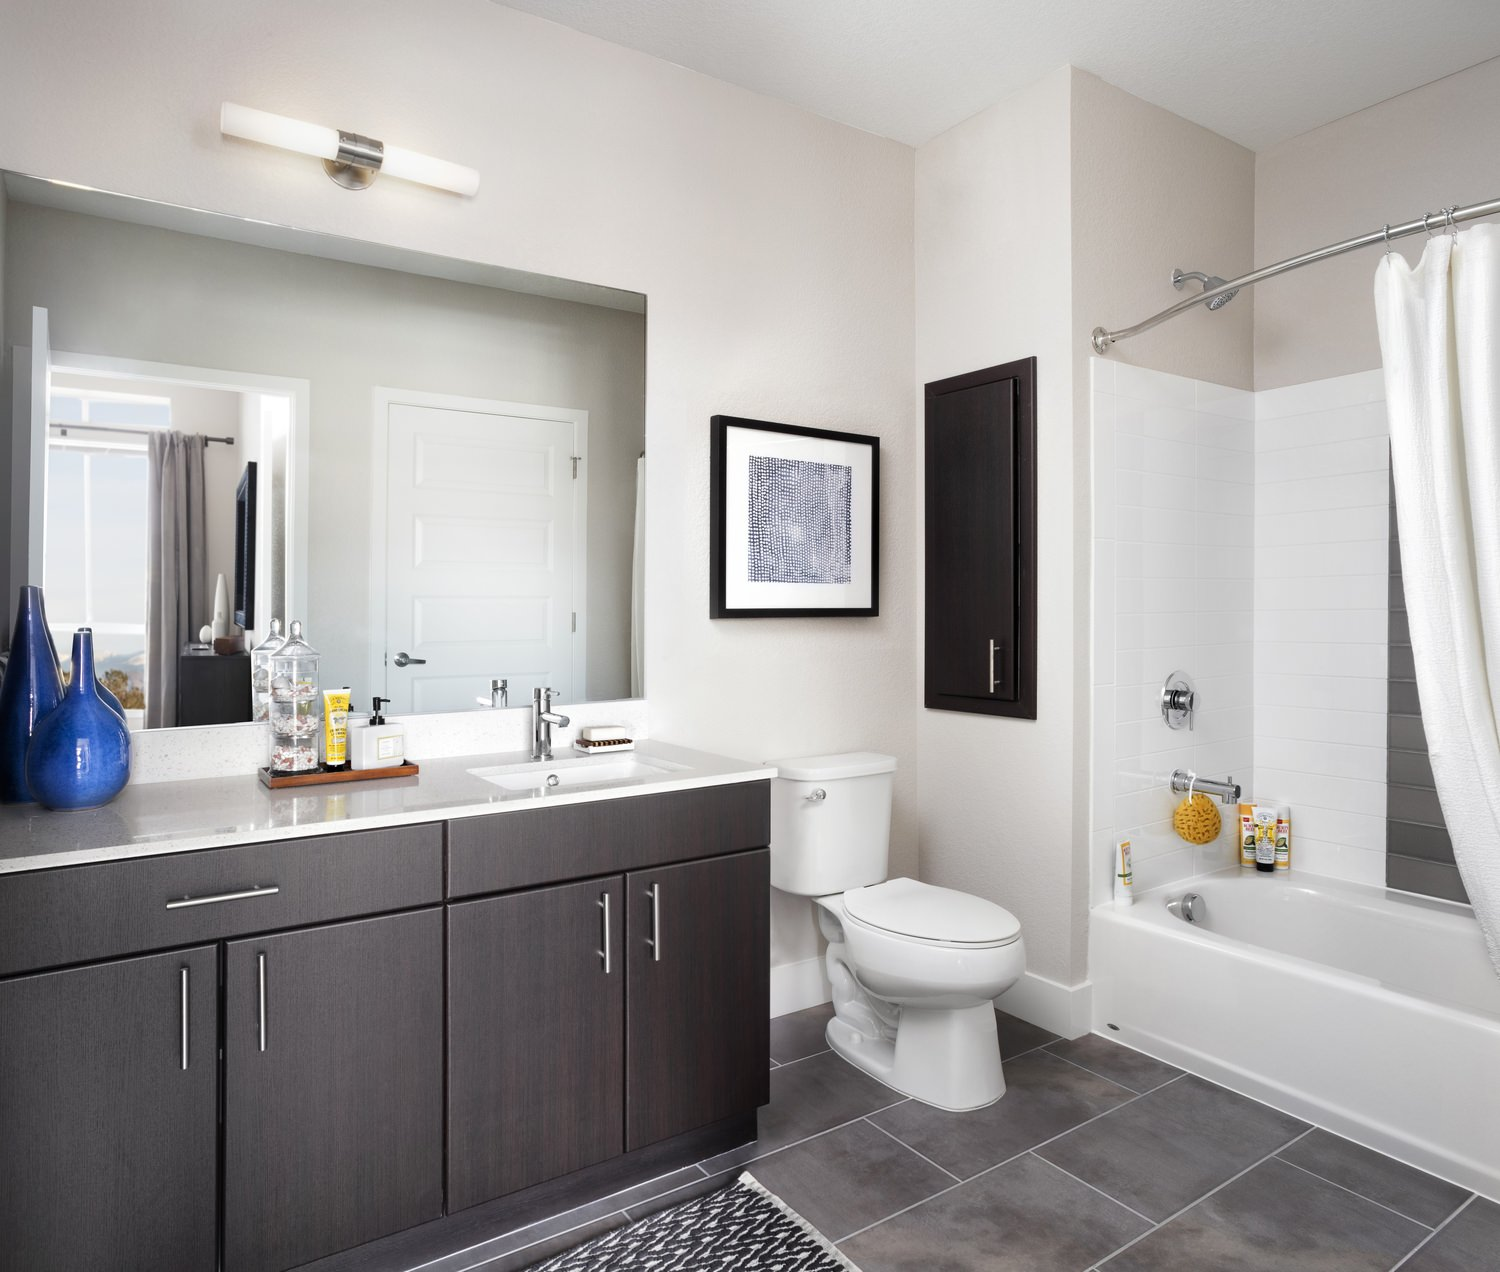 A bathroom in a house that has dark cabinets, a toilet, and a bathtub and shower combination.